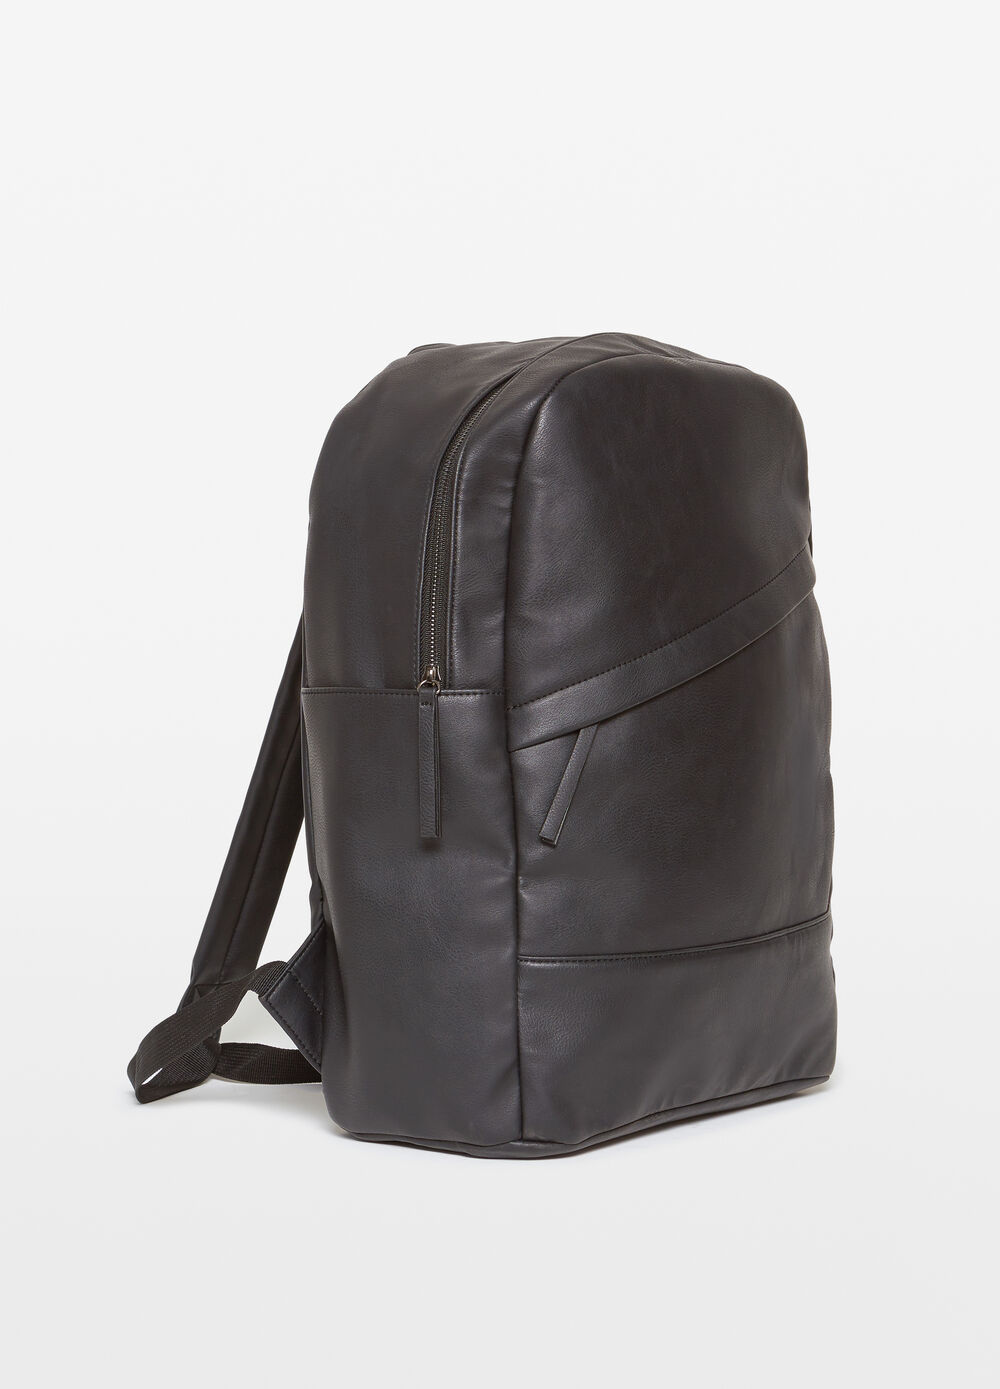 Hammered-effect leather-look backpack